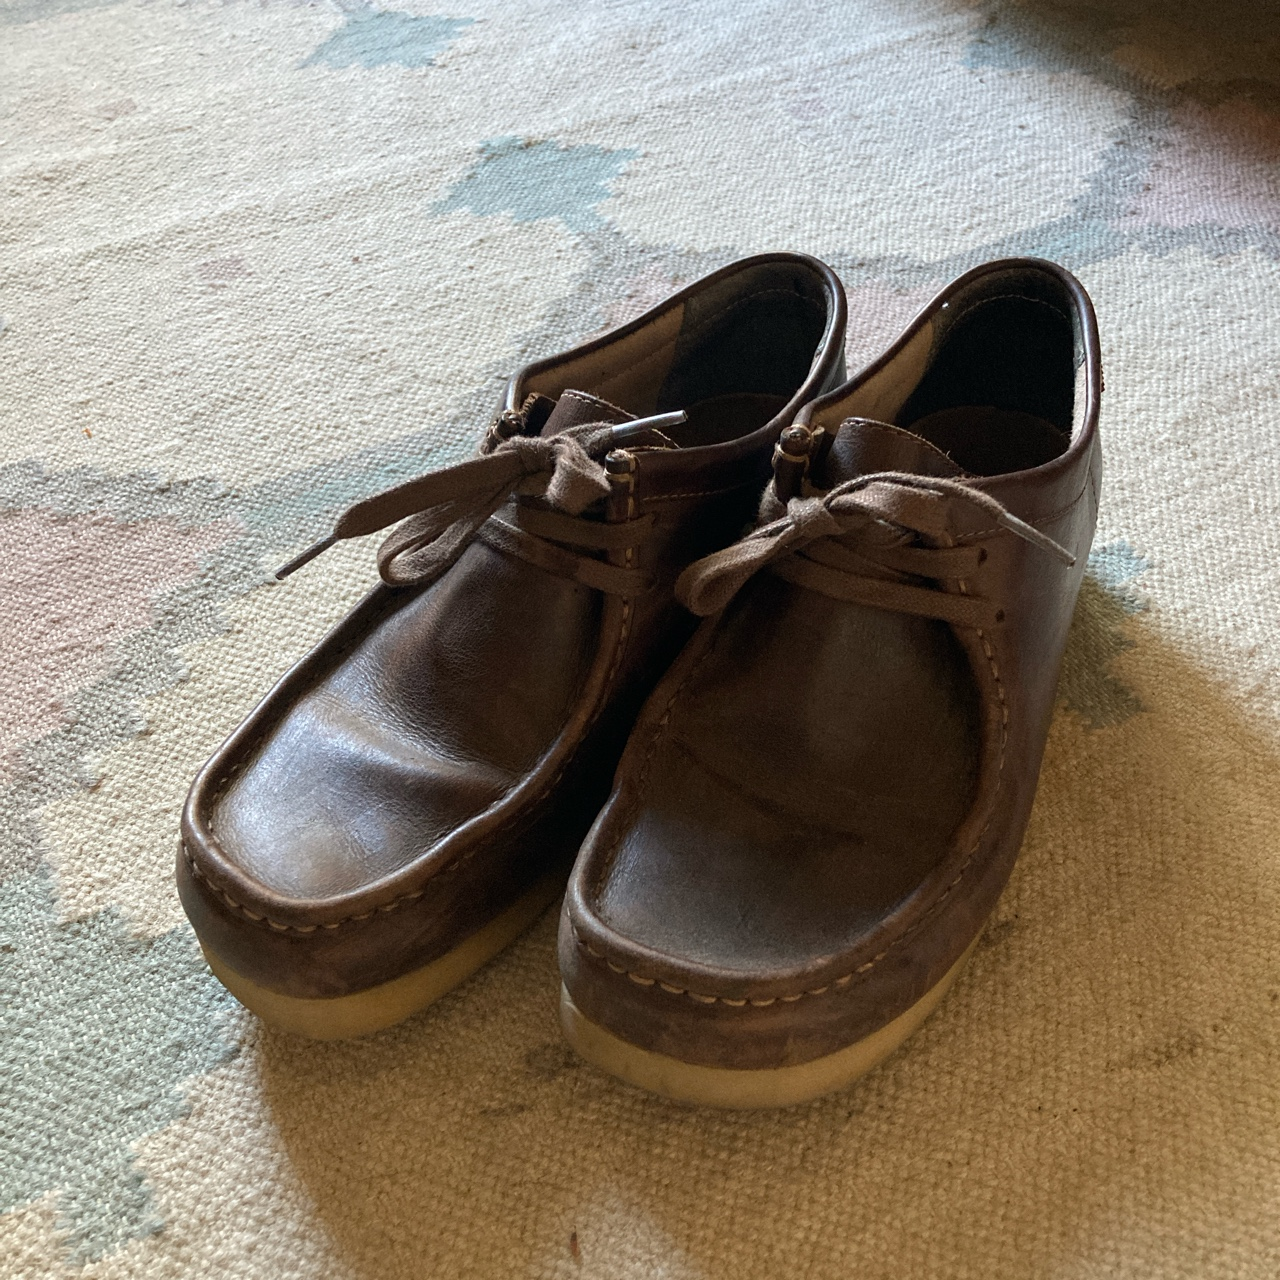 Product Image 1 - Clarks Wallabees in Brown/Beeswax Like new!